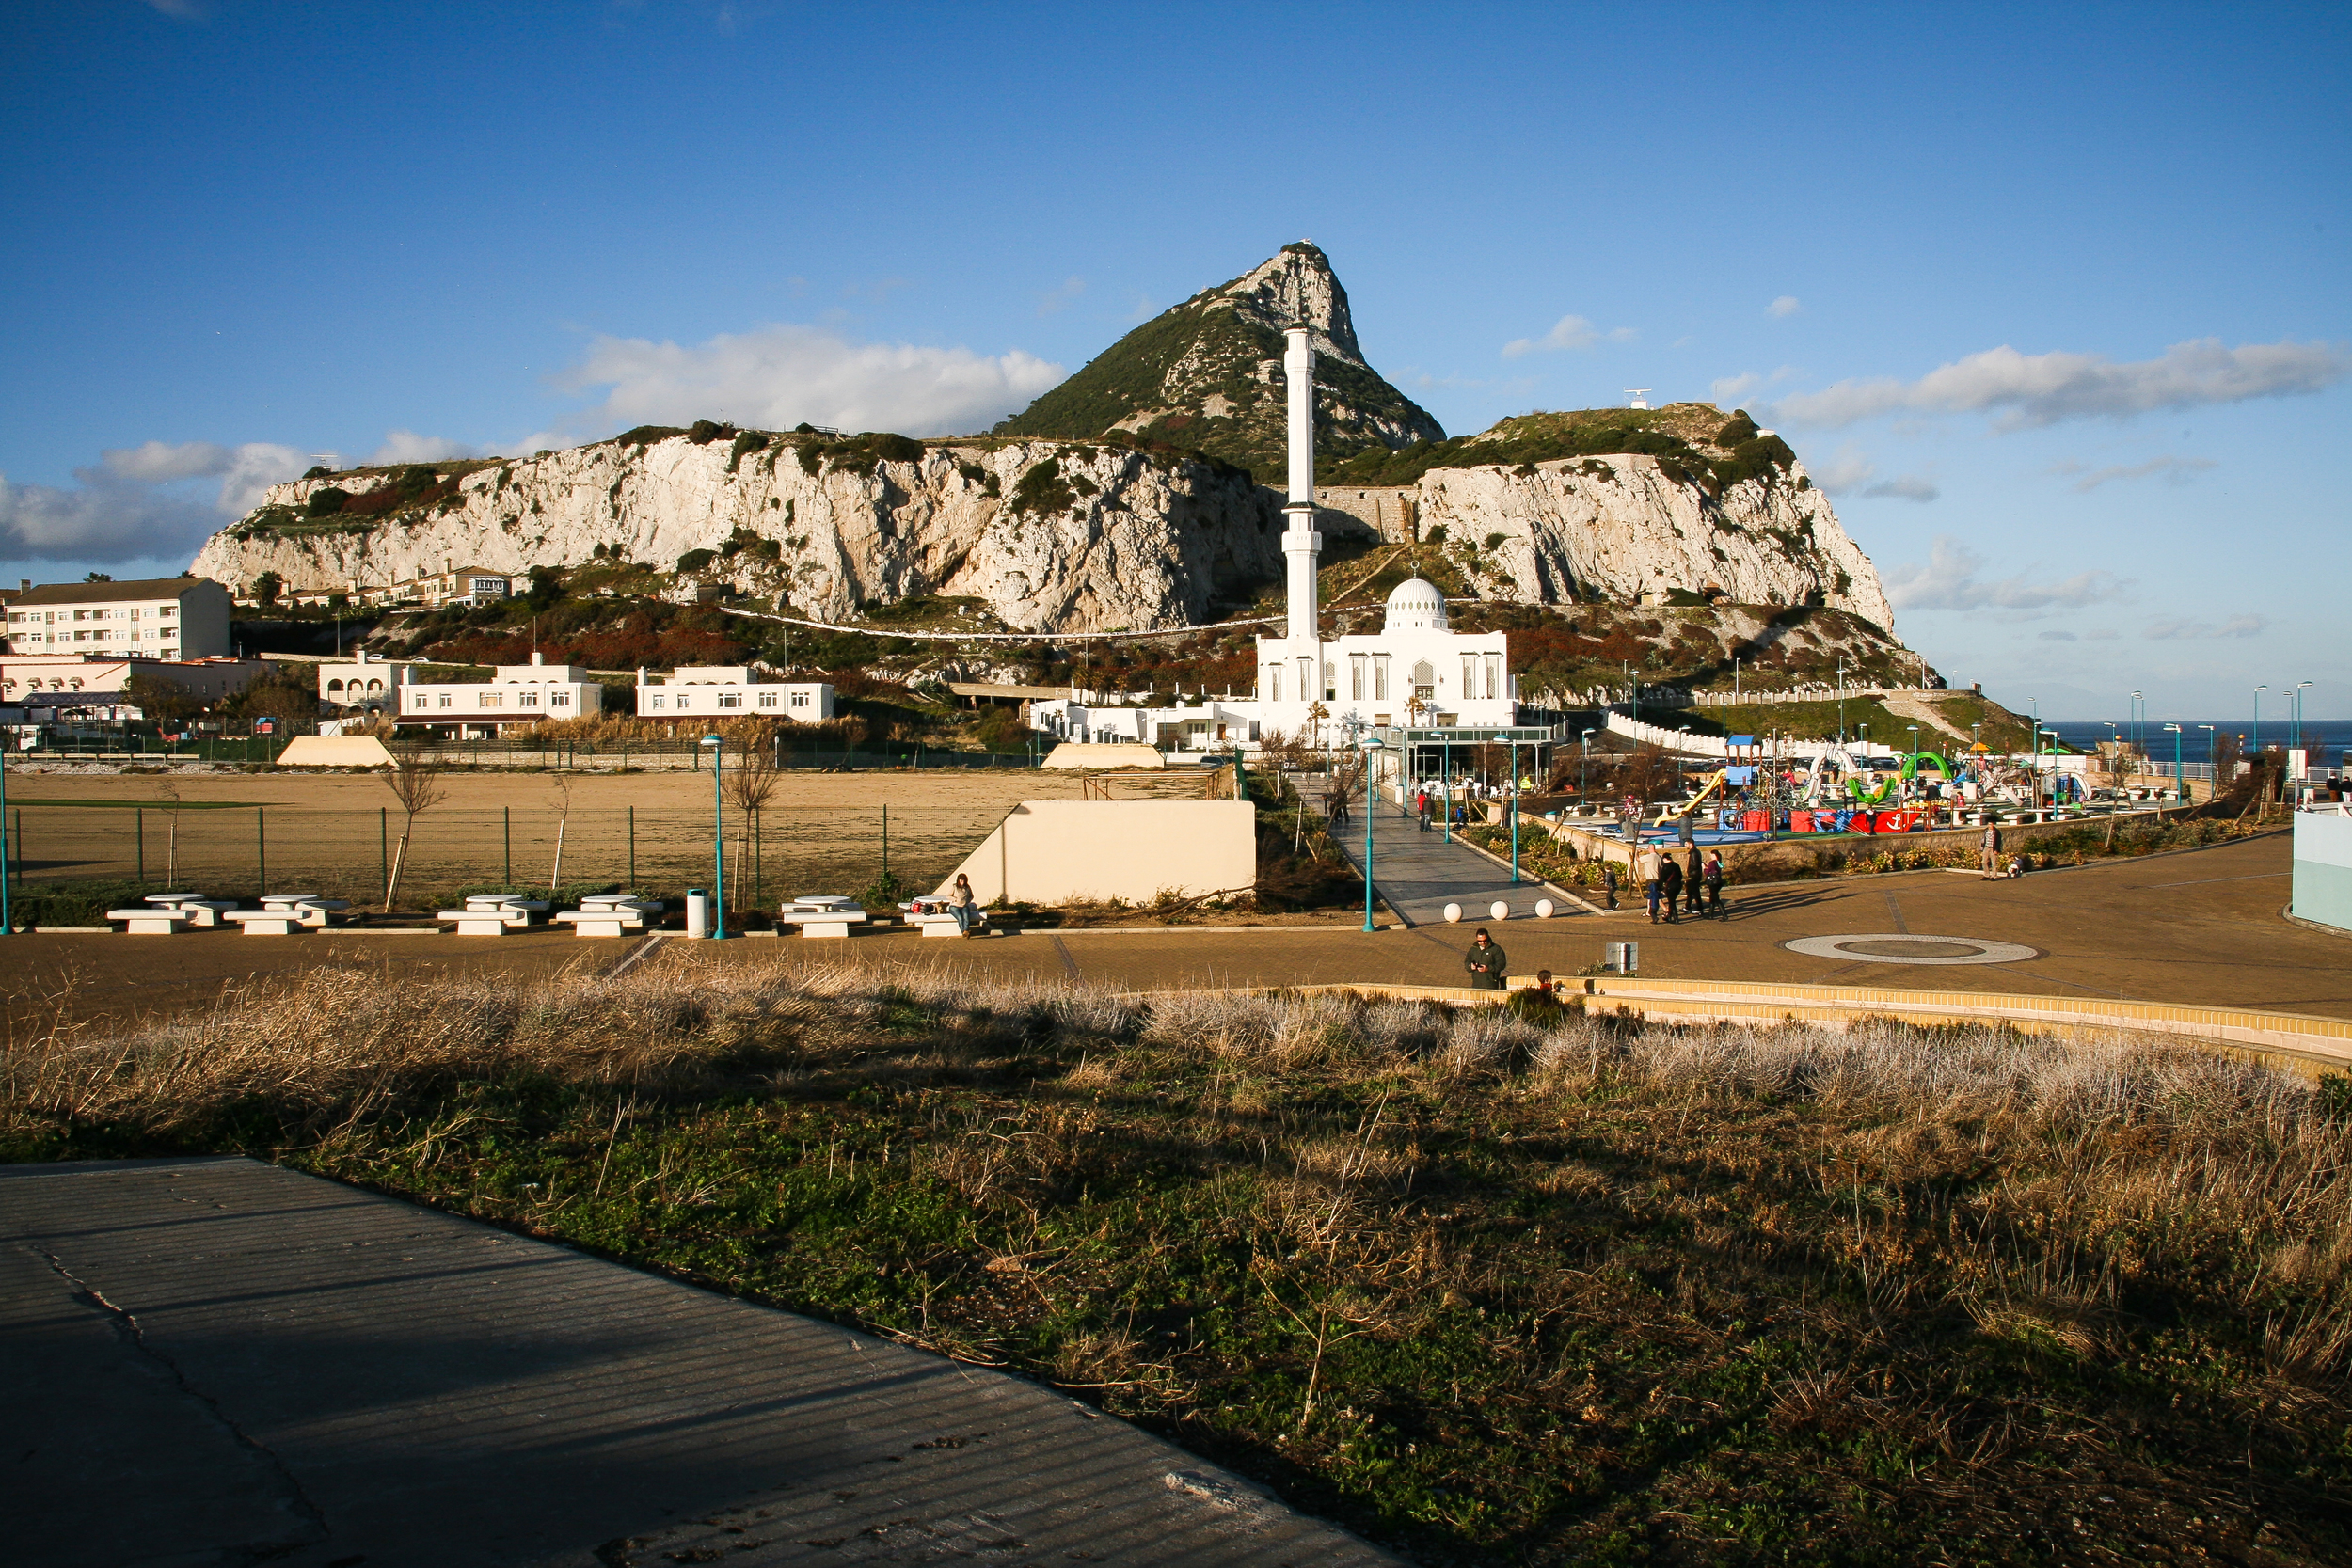 The Rock.  Seen from Europa Point. The Mosque of Two Holy Custodians and the children's playground in the front.